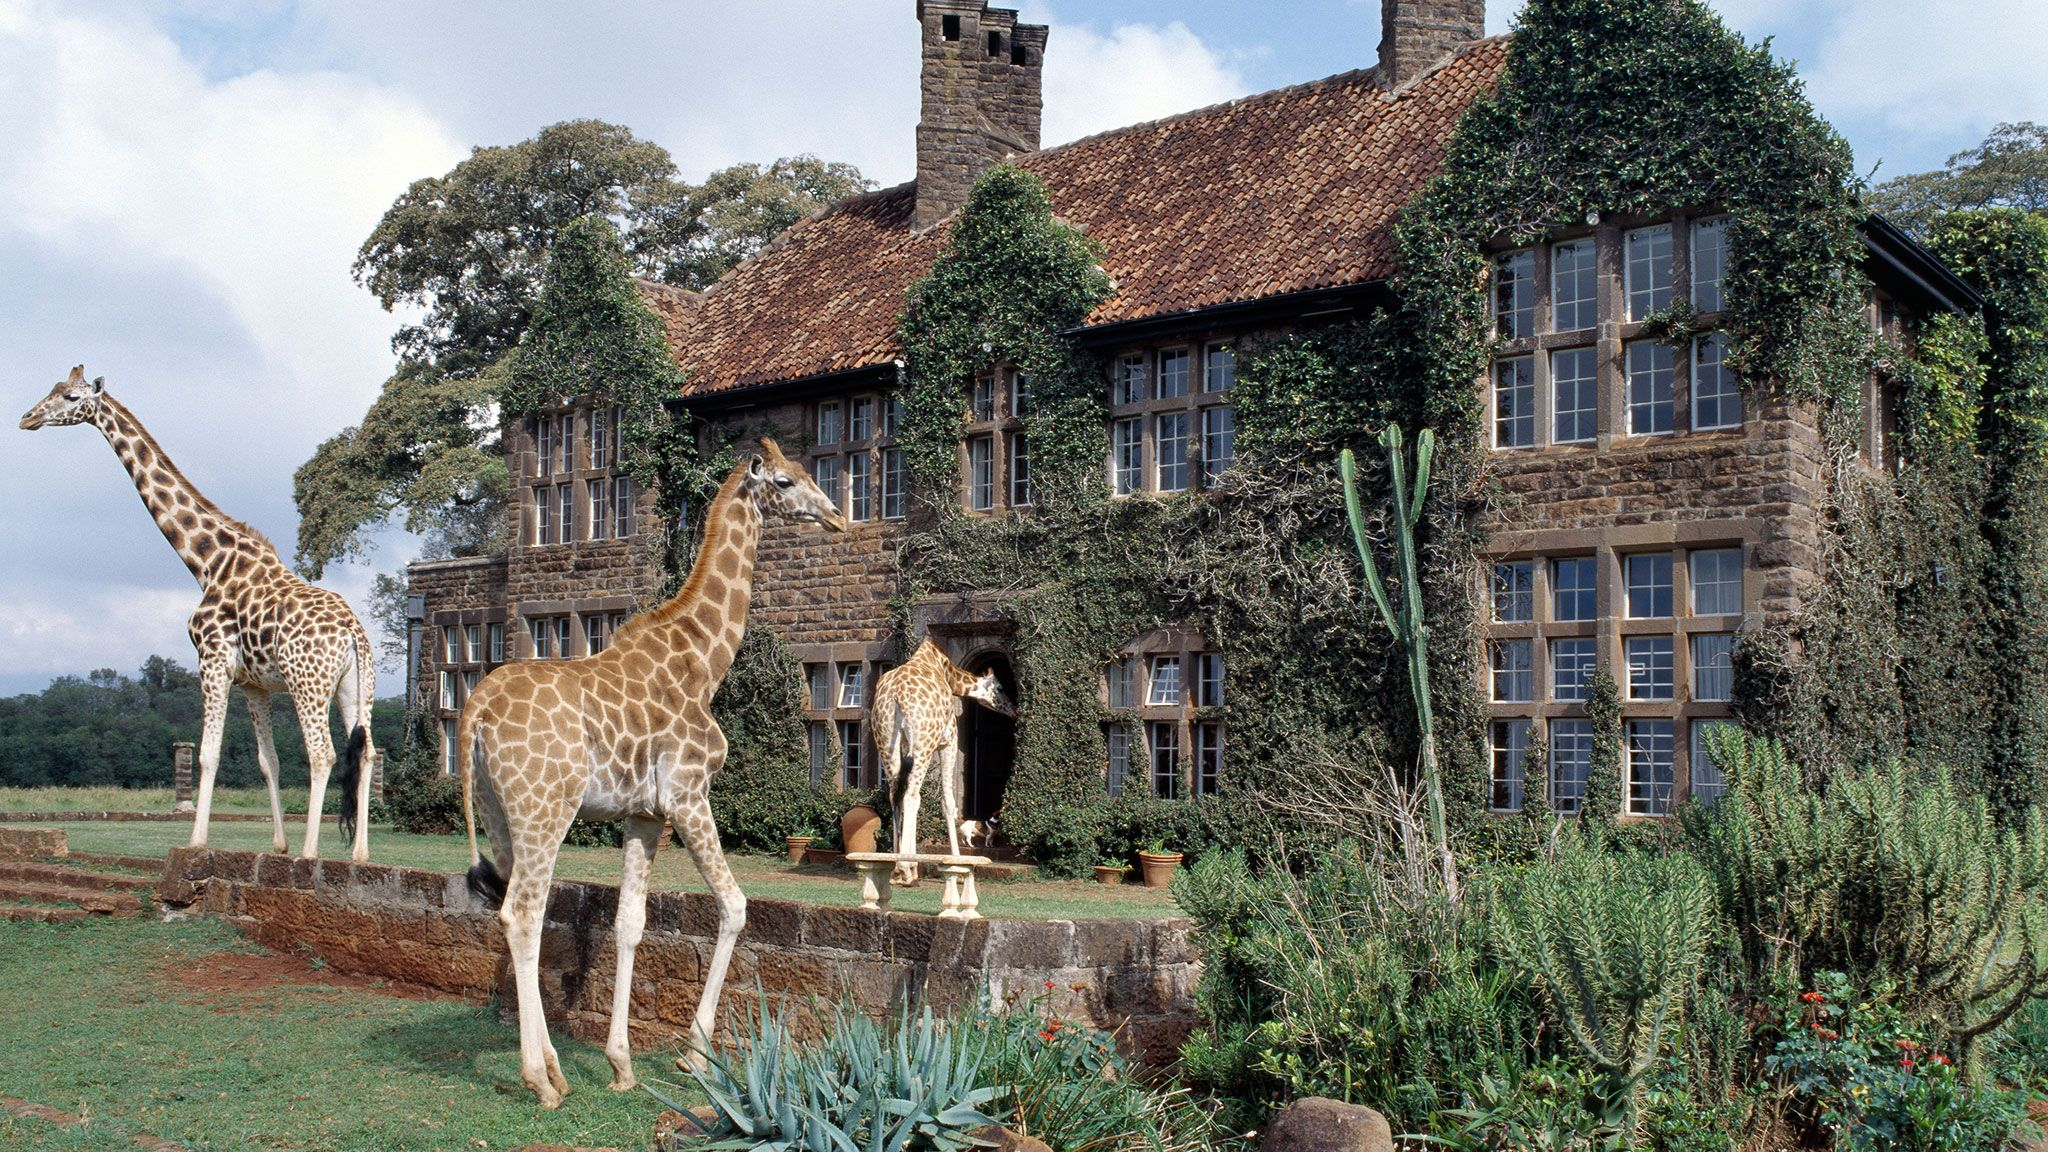 Condé Nast Traveler Gold List 2015: Top Hotels in the World   No matter how many safaris you've been on, there is nothing quite as wonderful and unforgettable as having breakfast or tea with giraffes at the Giraffe Manor, in Nairobi. A stunning turn-of-the-century stone mansion with ten rooms, it is also home to half a dozen friendly giraffes that poke their long necks into the large windows as guests are having breakfast and join them in the front garden for late-afternoon tea.